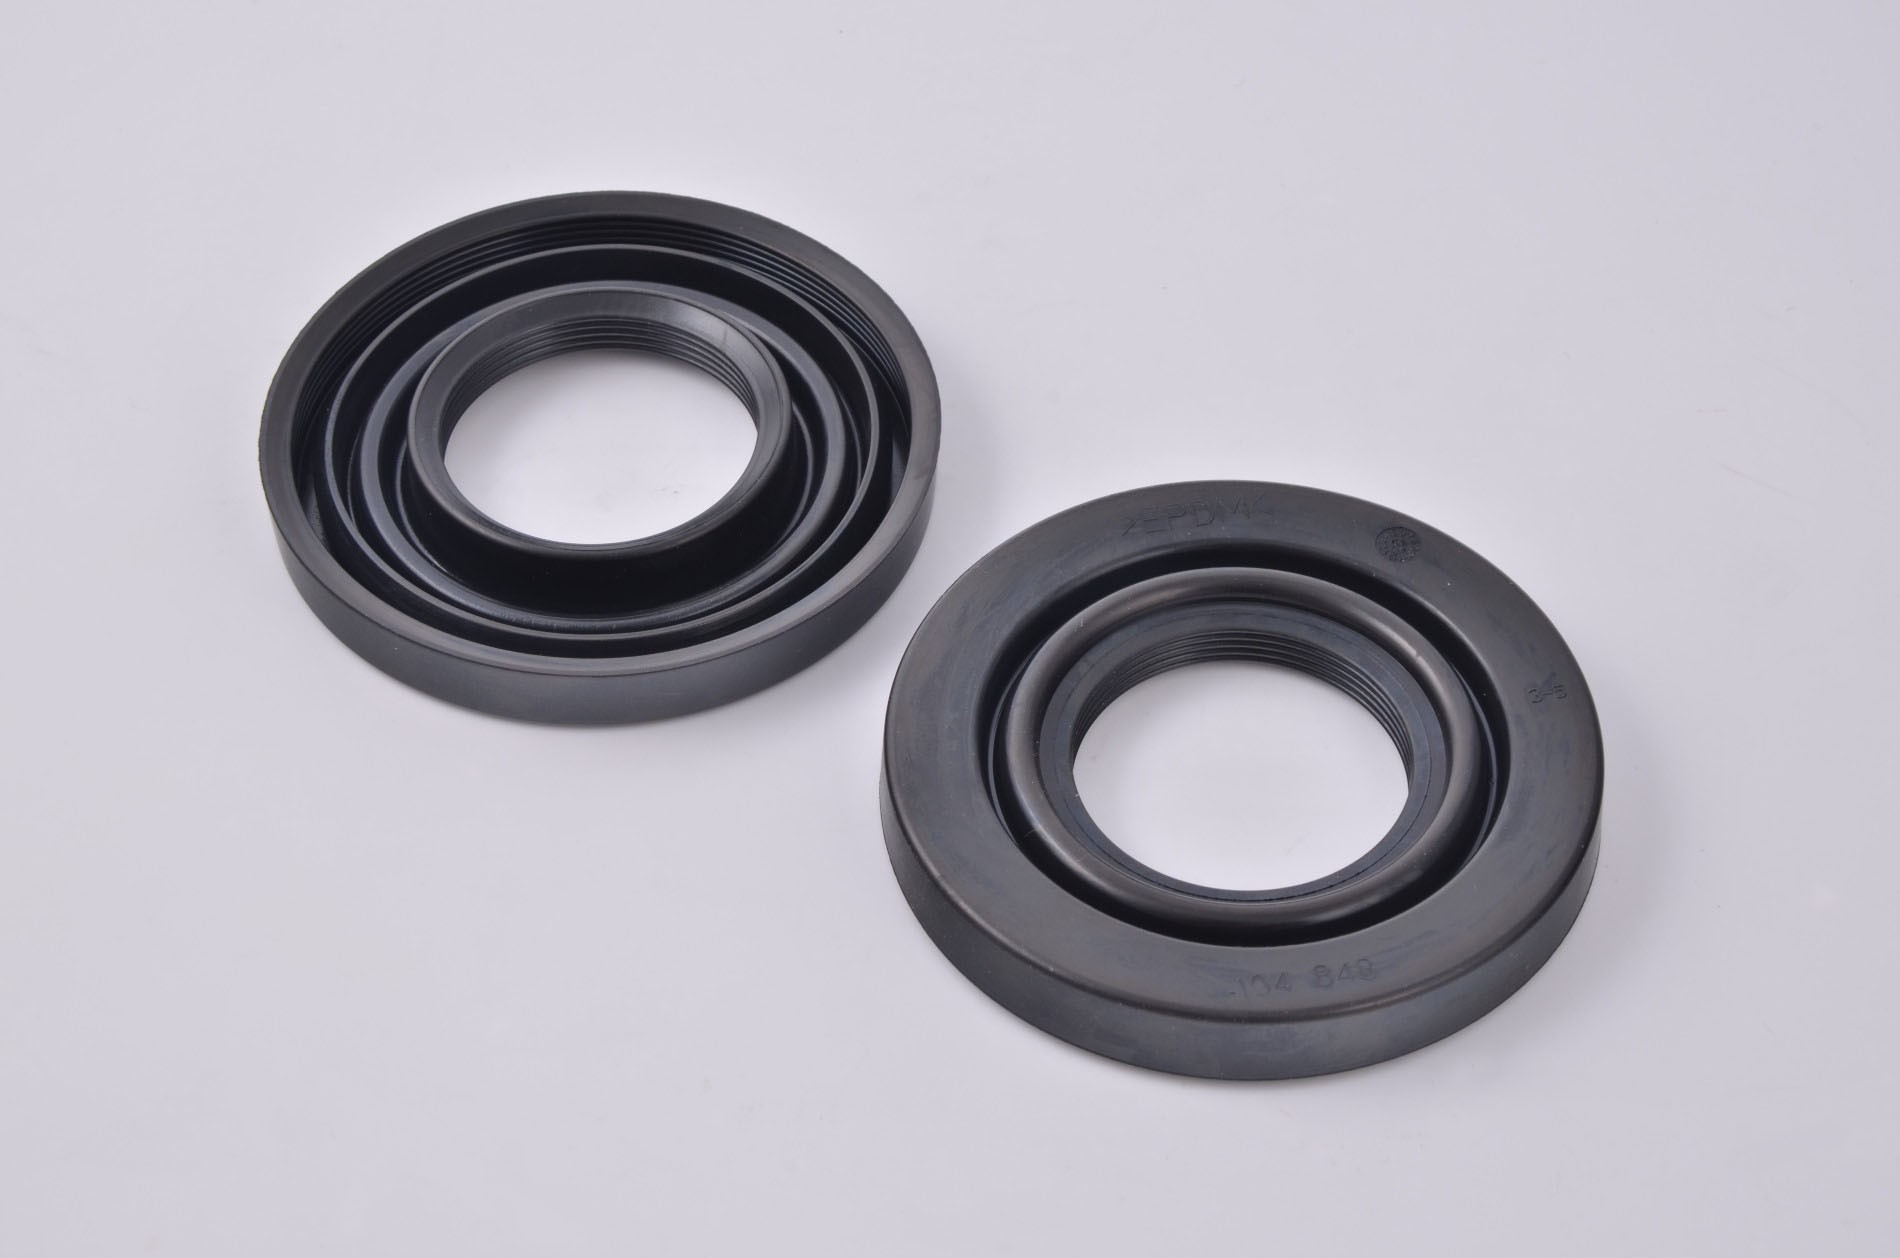 Rubber seal Manufacturers, Rubber seal Factory, Rubber seal